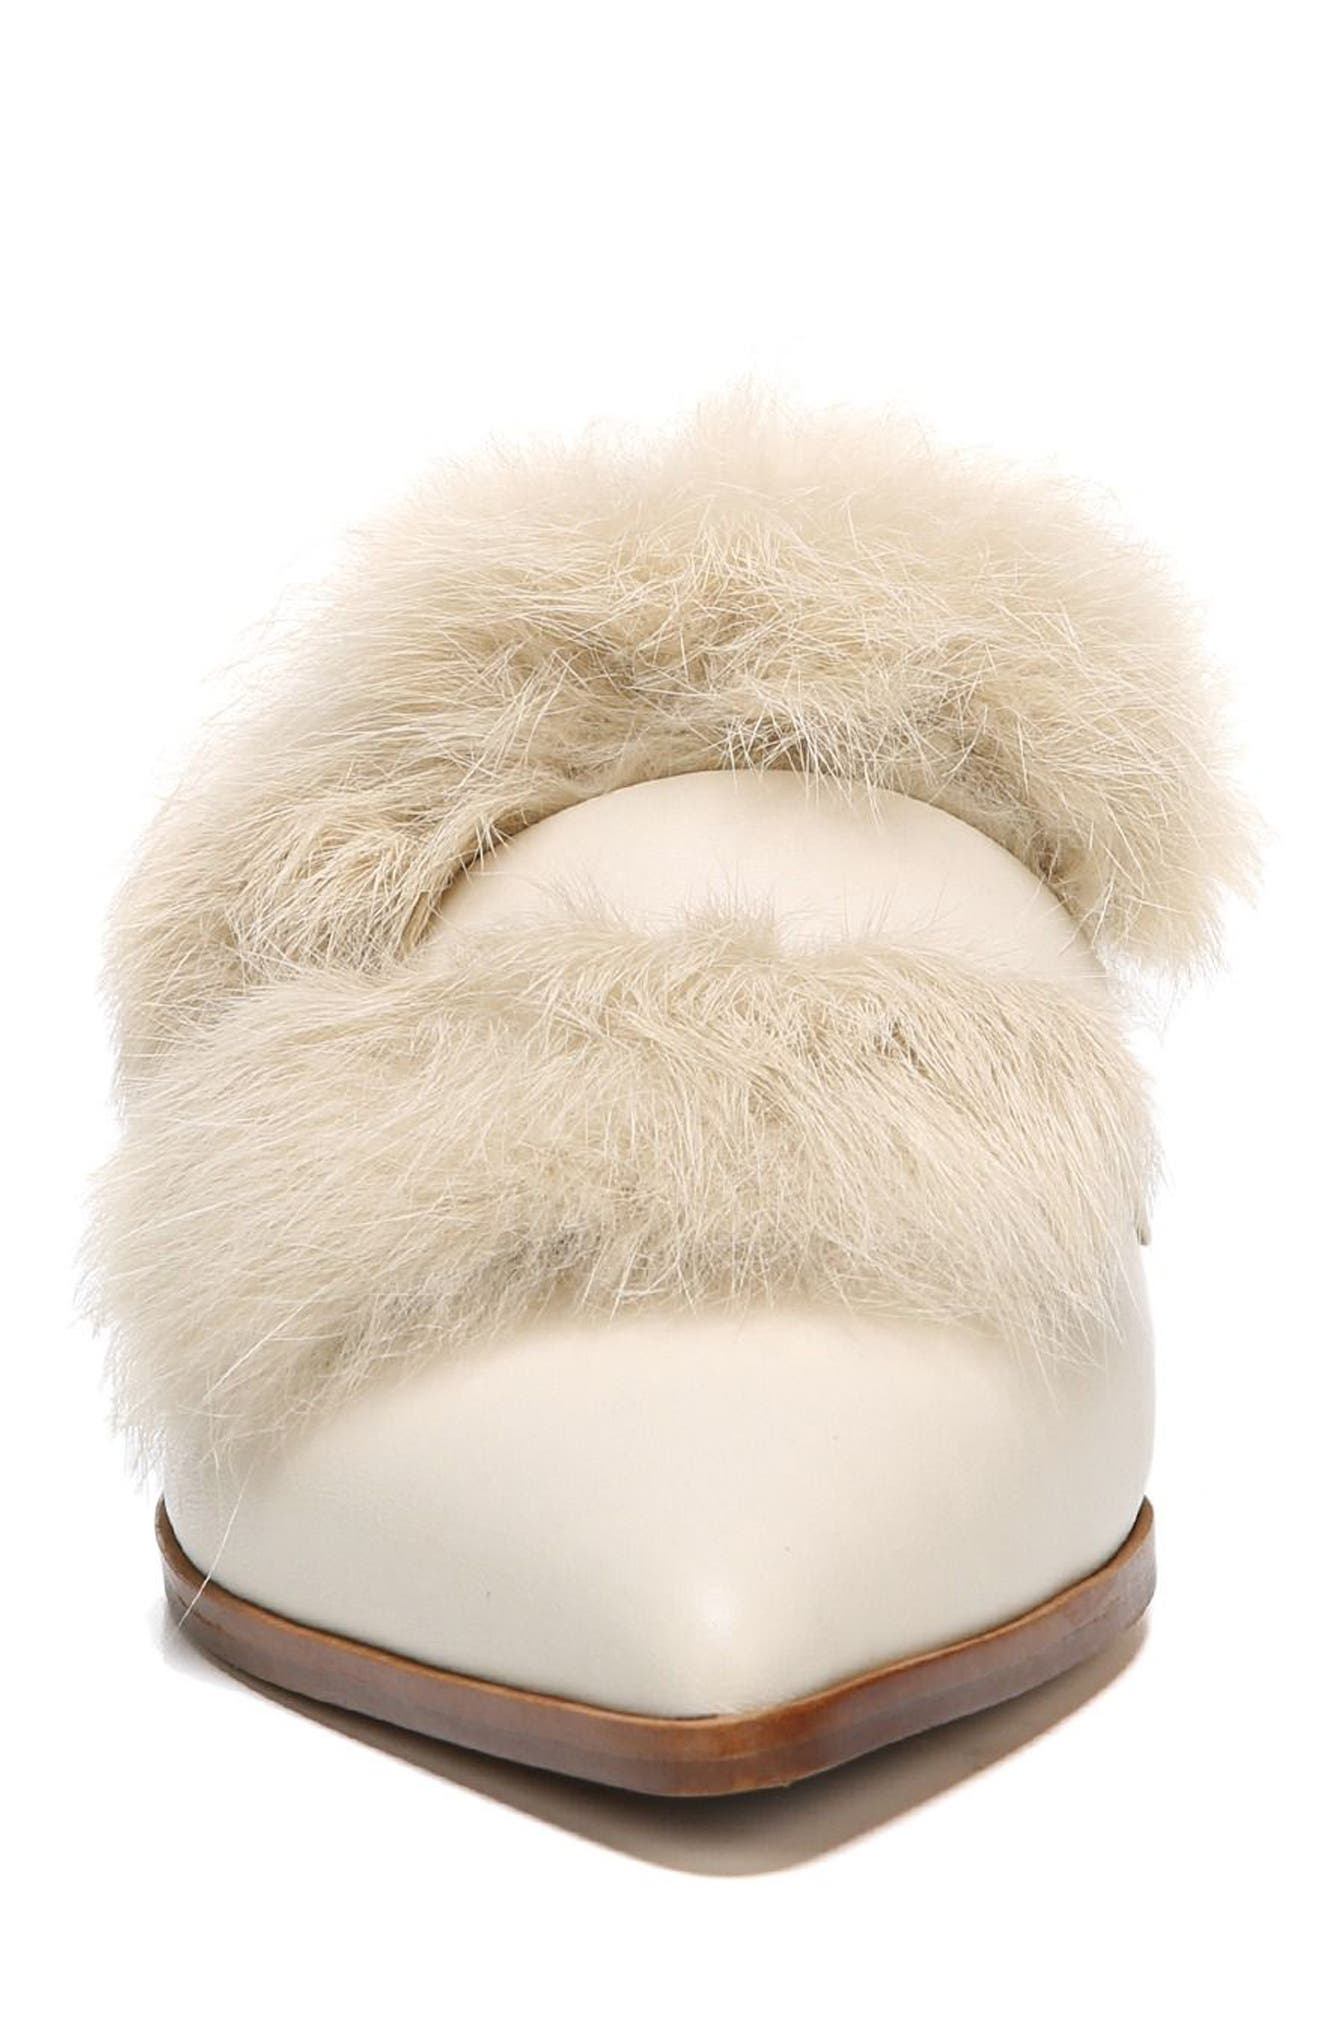 Palmer II Genuine Rabbit Fur Slide,                             Alternate thumbnail 4, color,                             Winter White Leather